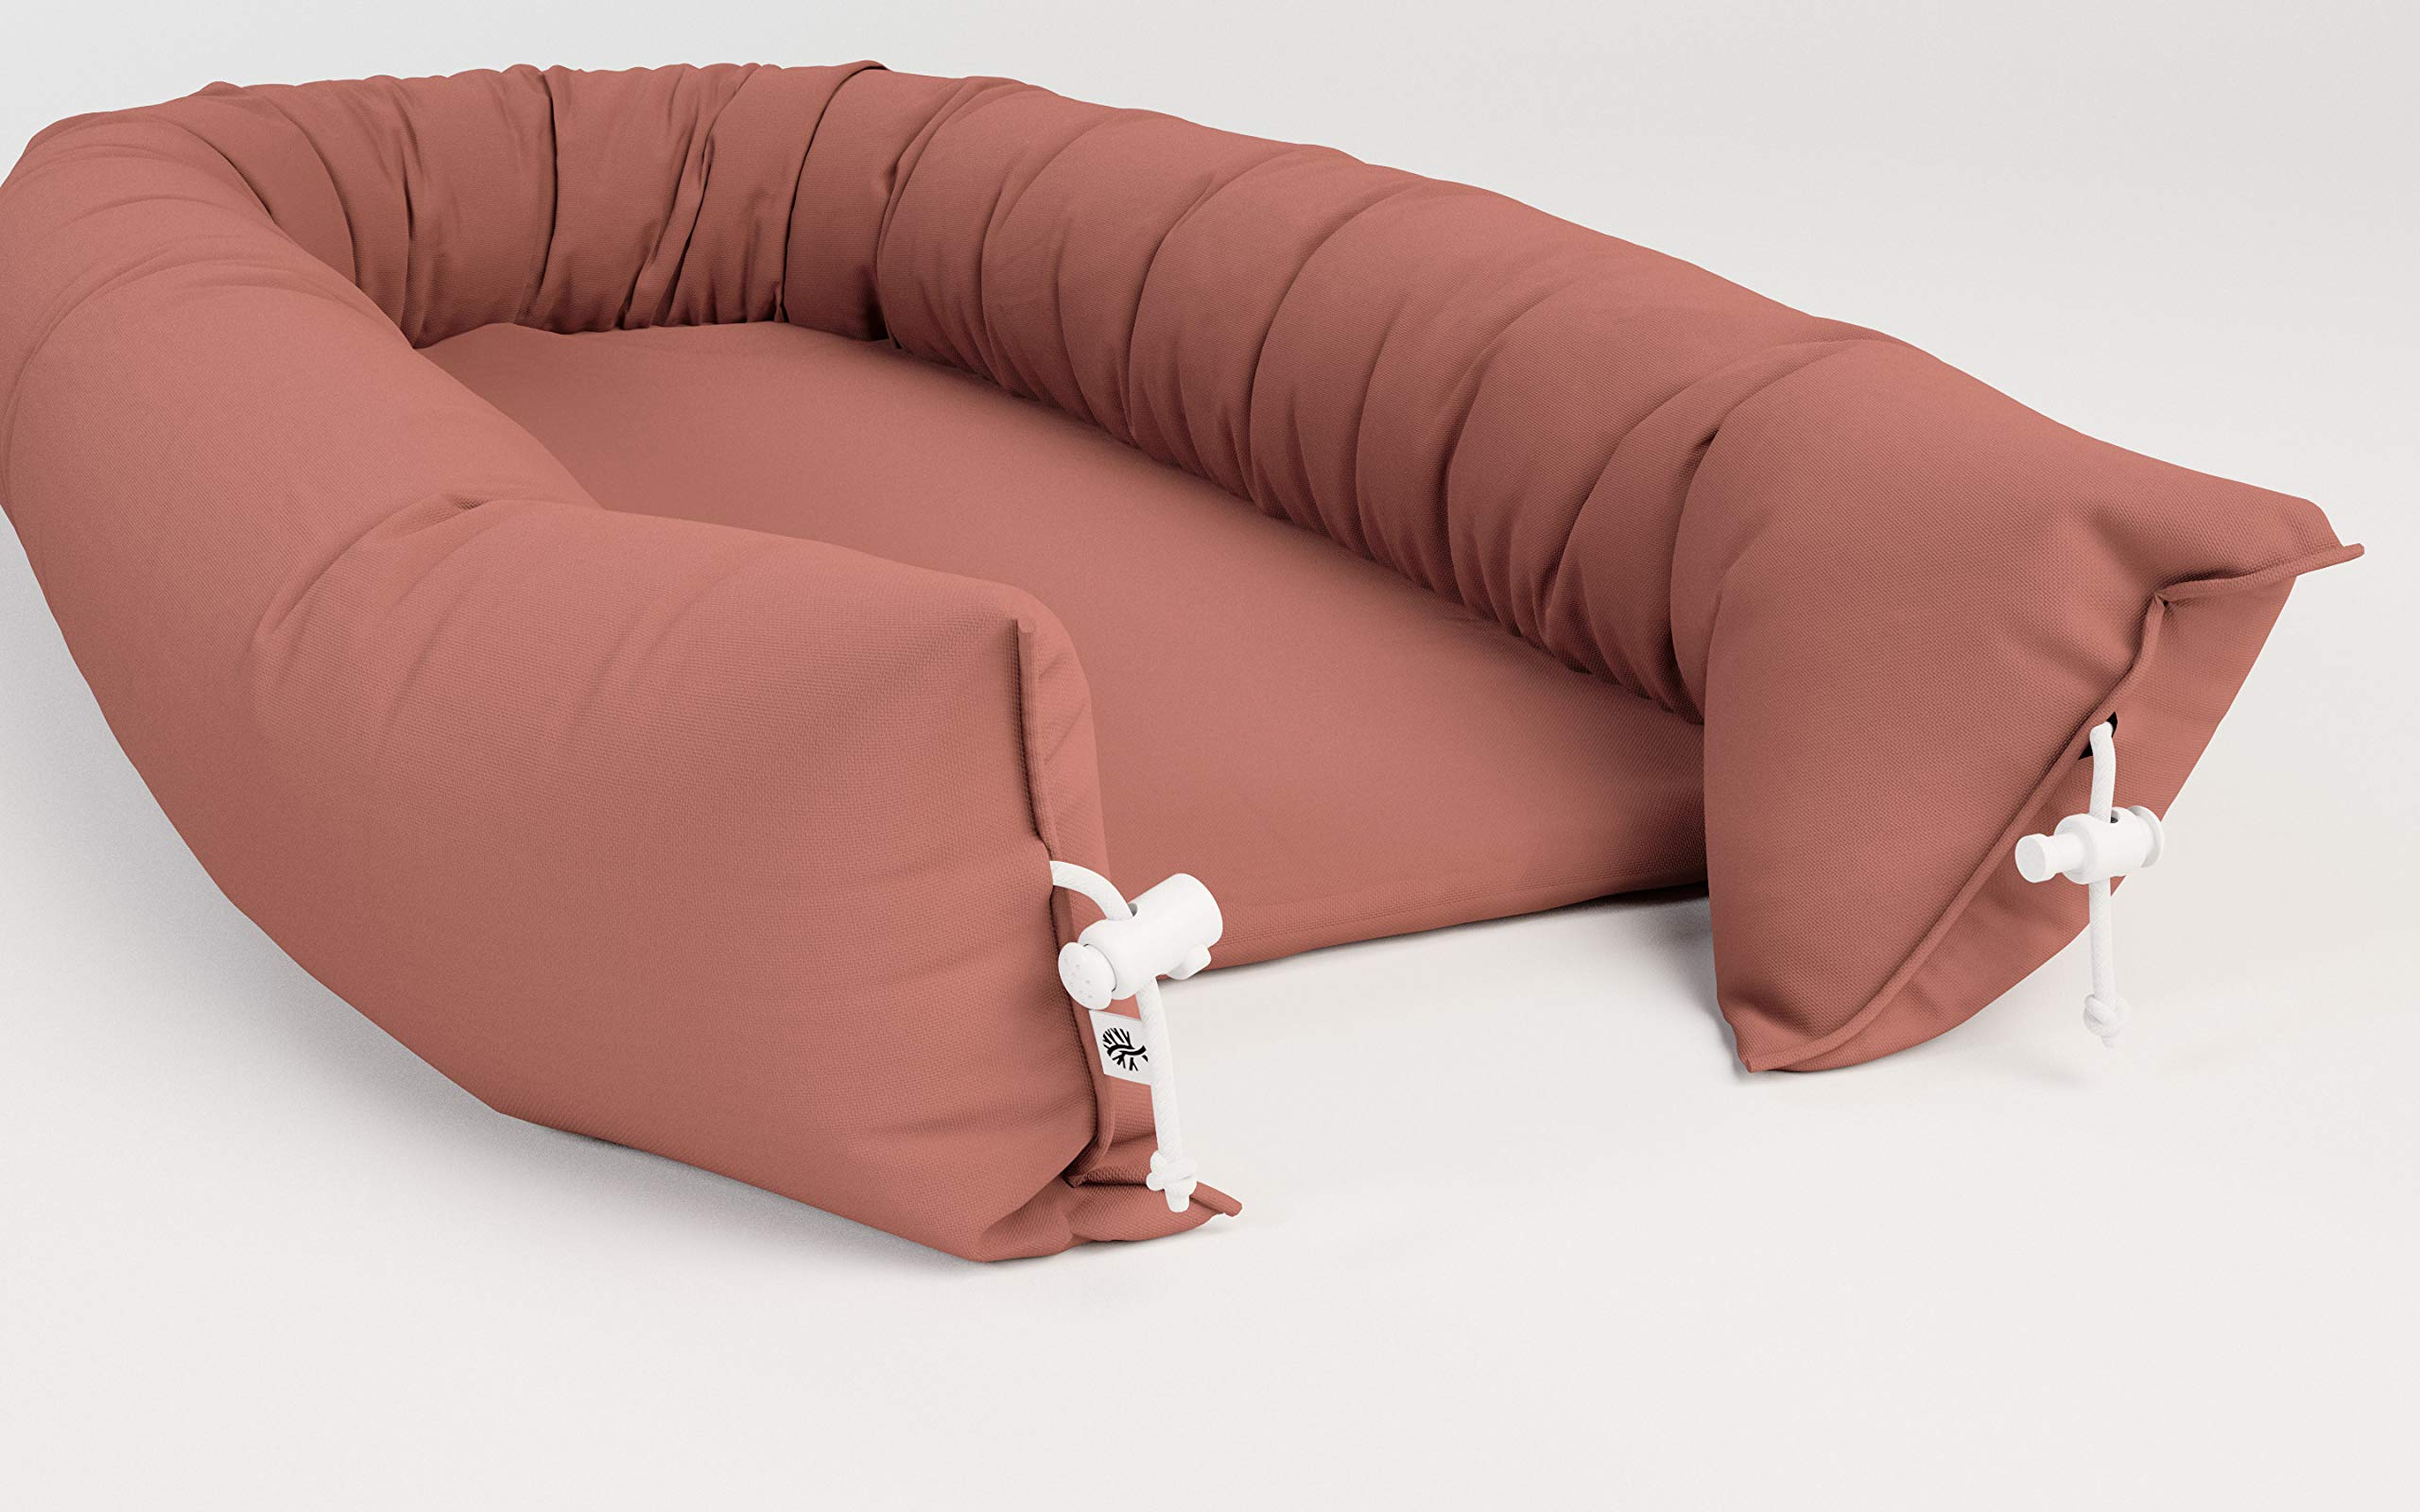 Askr & Embla Sleepod Original Baby-Sleeper and Lounger - Perfect for Napping, Tummy time and Travel. Organic & Hypoallergenic - Suitable from 0-7 Months (Terracotta) by Askr & Embla (Image #3)